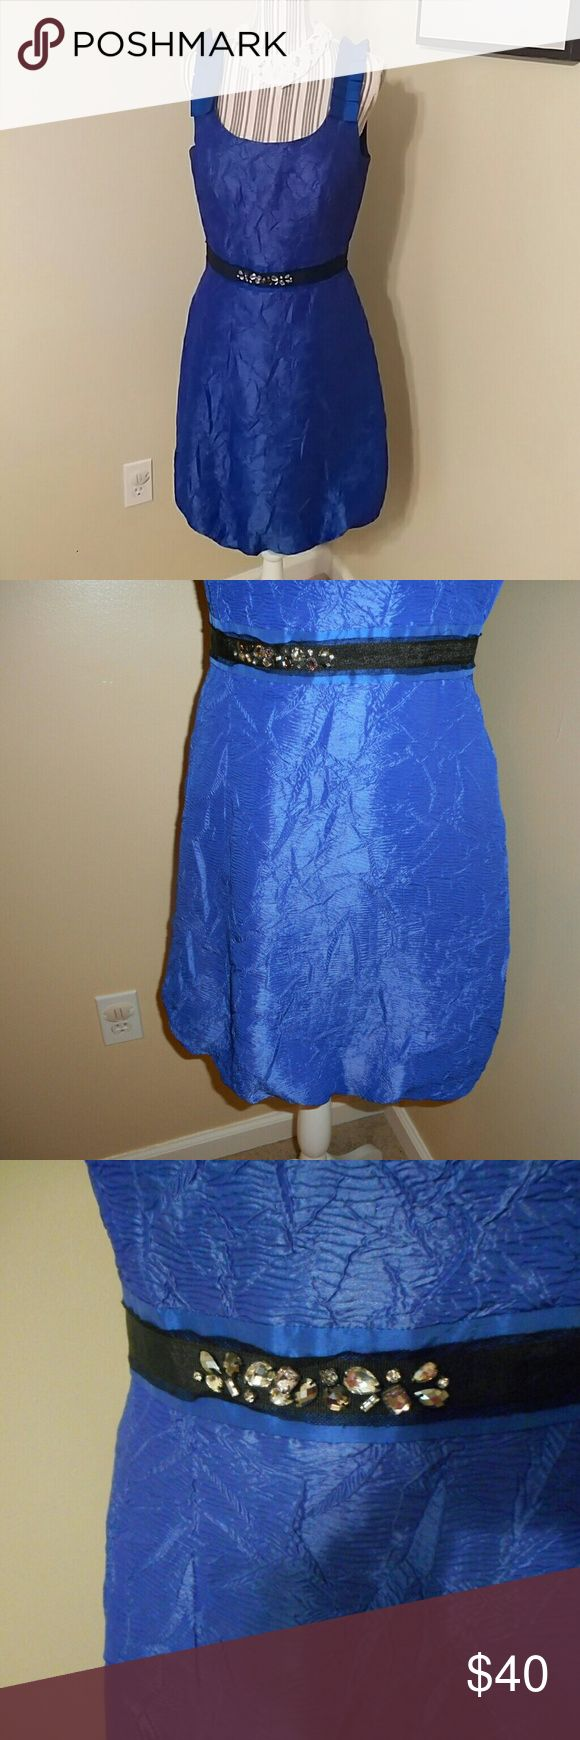 EUC! Max h Cleo Electric Blue Dress With Accent EUC! Max h Cleo Electric Blue Dress With Accent  Sz. 10 Beautiful detailed accent Puffy at the bottom. Great for cocktail hour at your next event. Max & Cleo Dresses